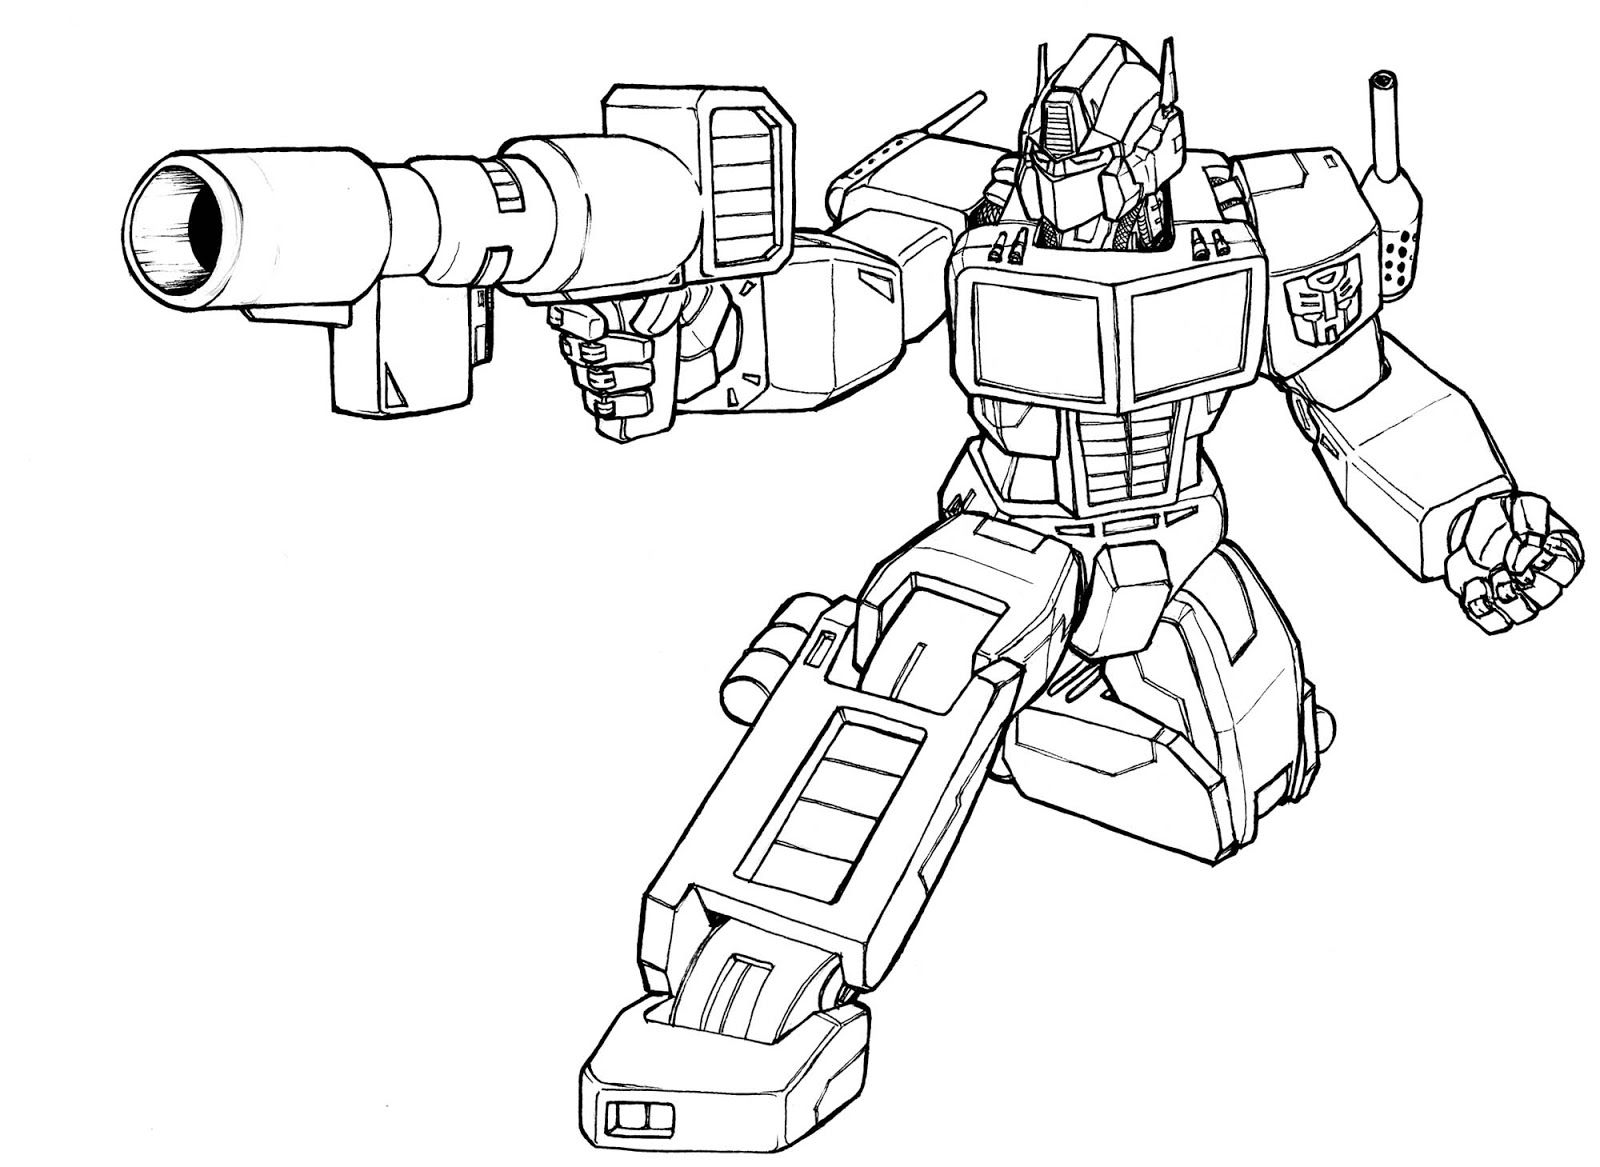 Transformers Coloring Sheets Free Online Printable Pages For Kids Get The Latest Images